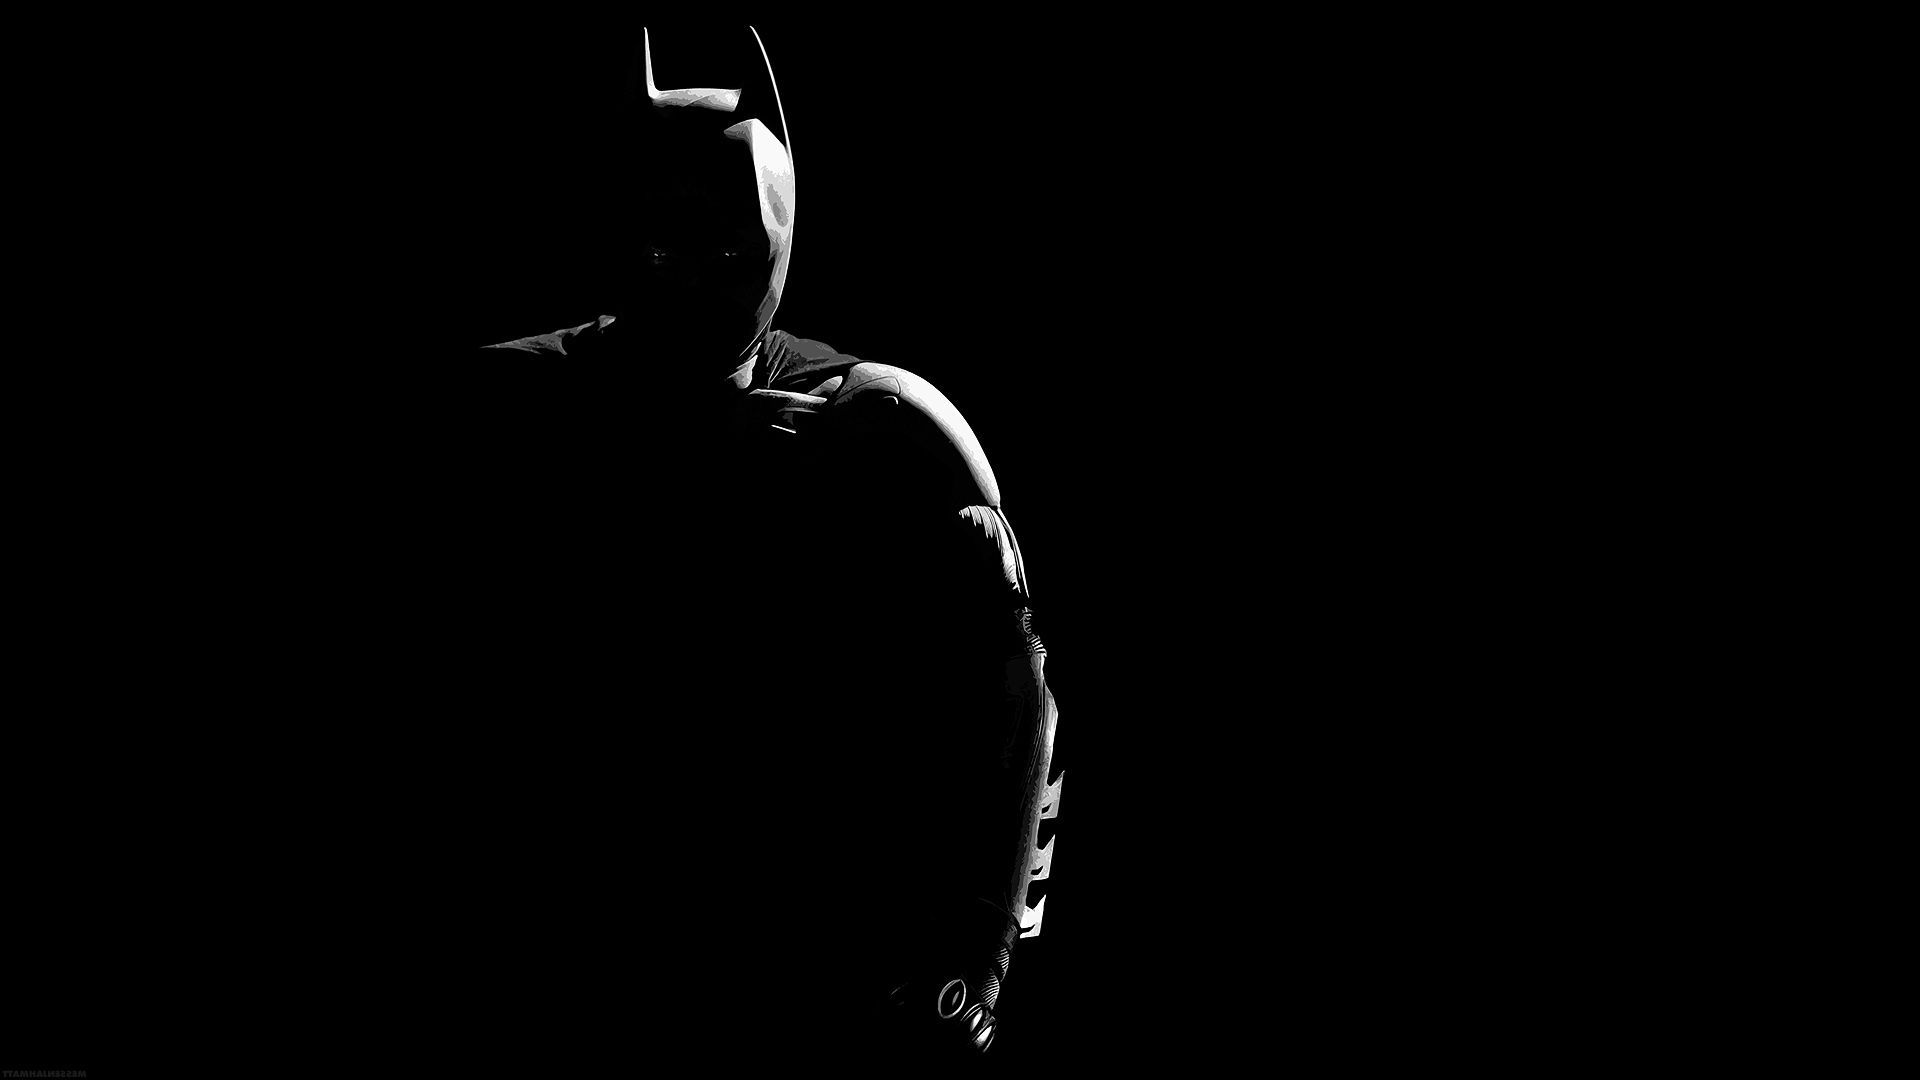 File Name 745555 745555 Batman Wallpapers Movies Backgrounds 1920x1080